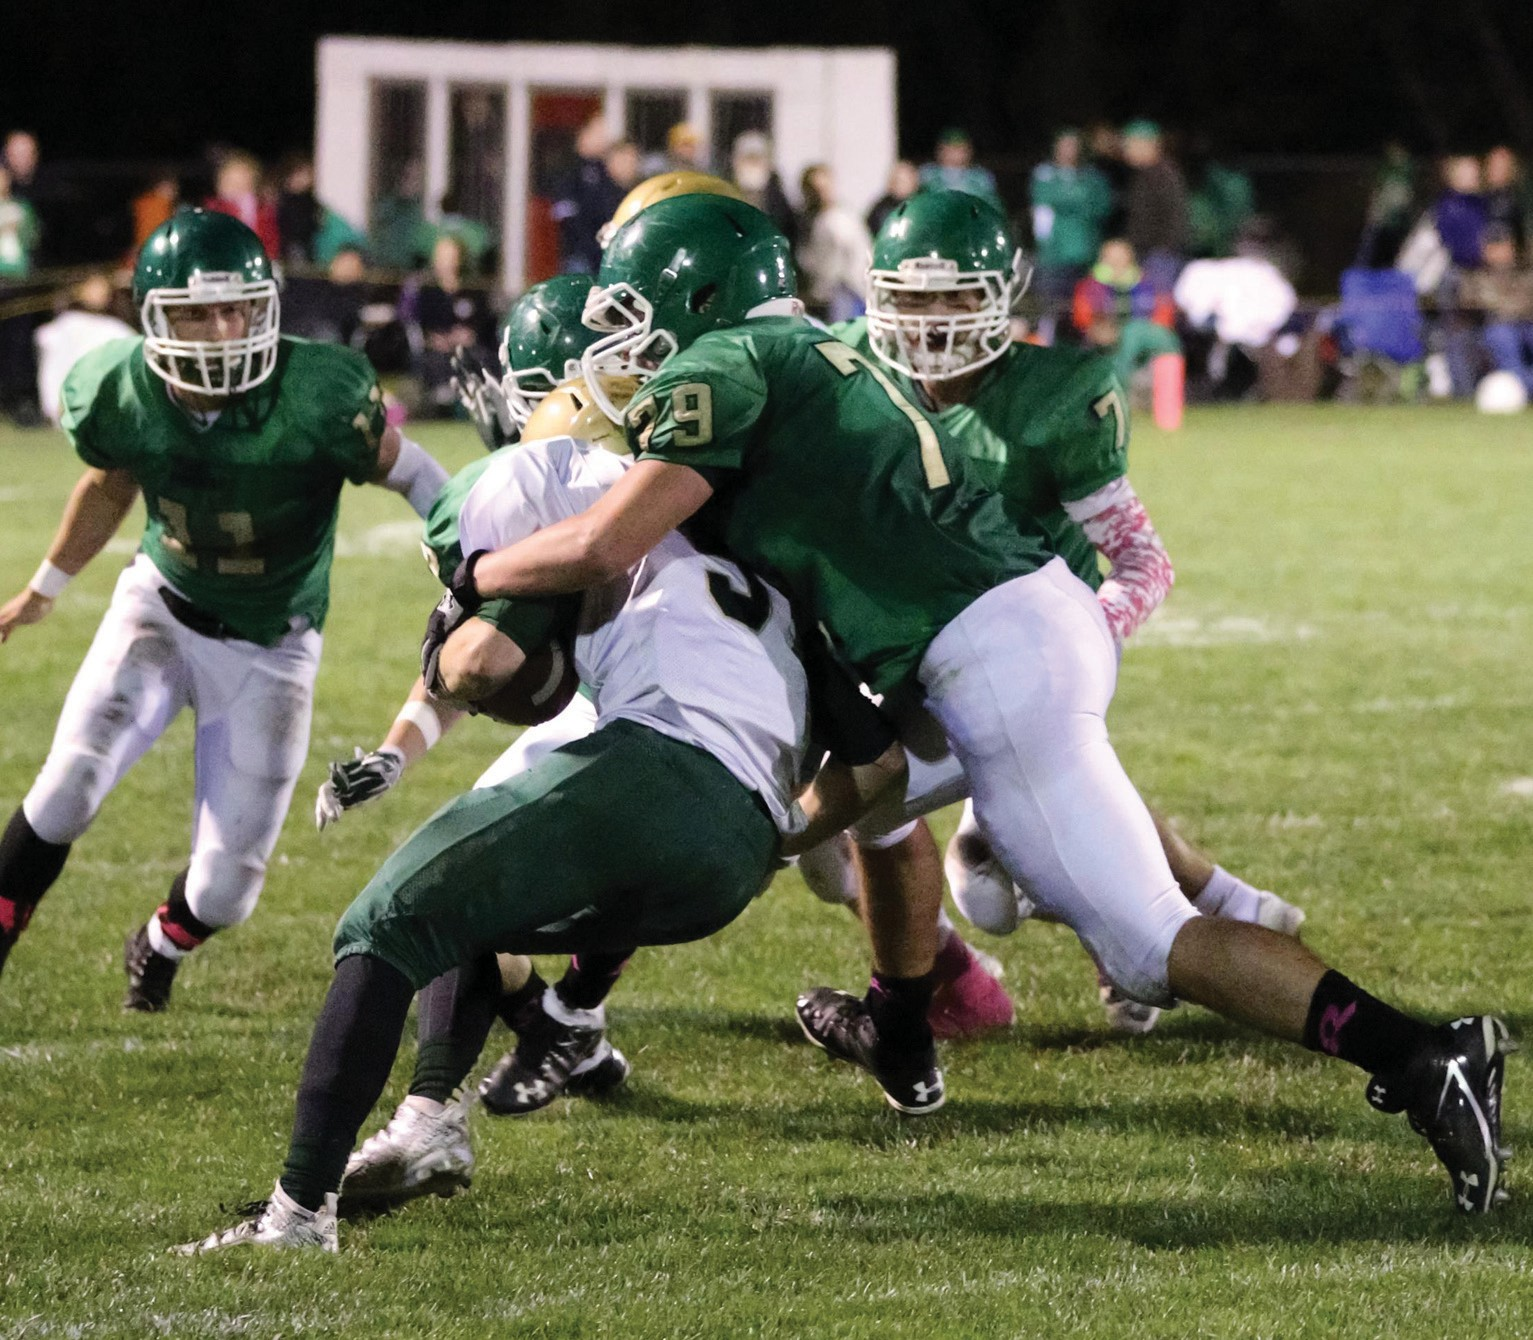 Massabesic's Nate Baert makes a tackle during Friday night's game against Oxford Hills/Buckfield.